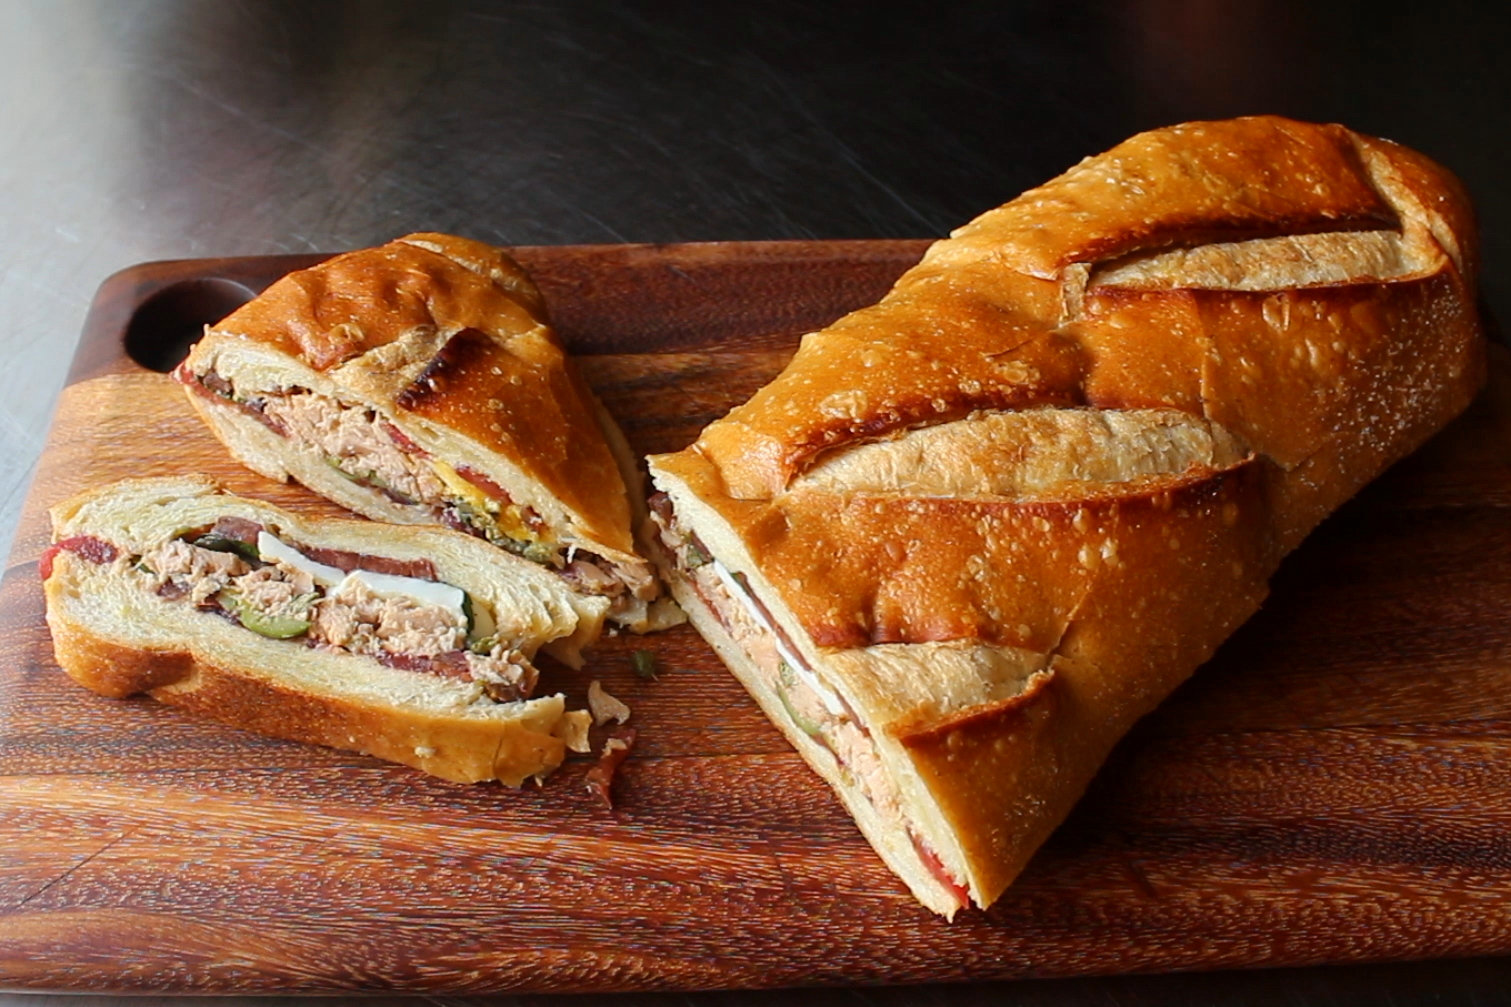 Pan Bagnat (Pressed French Tuna Sandwich)